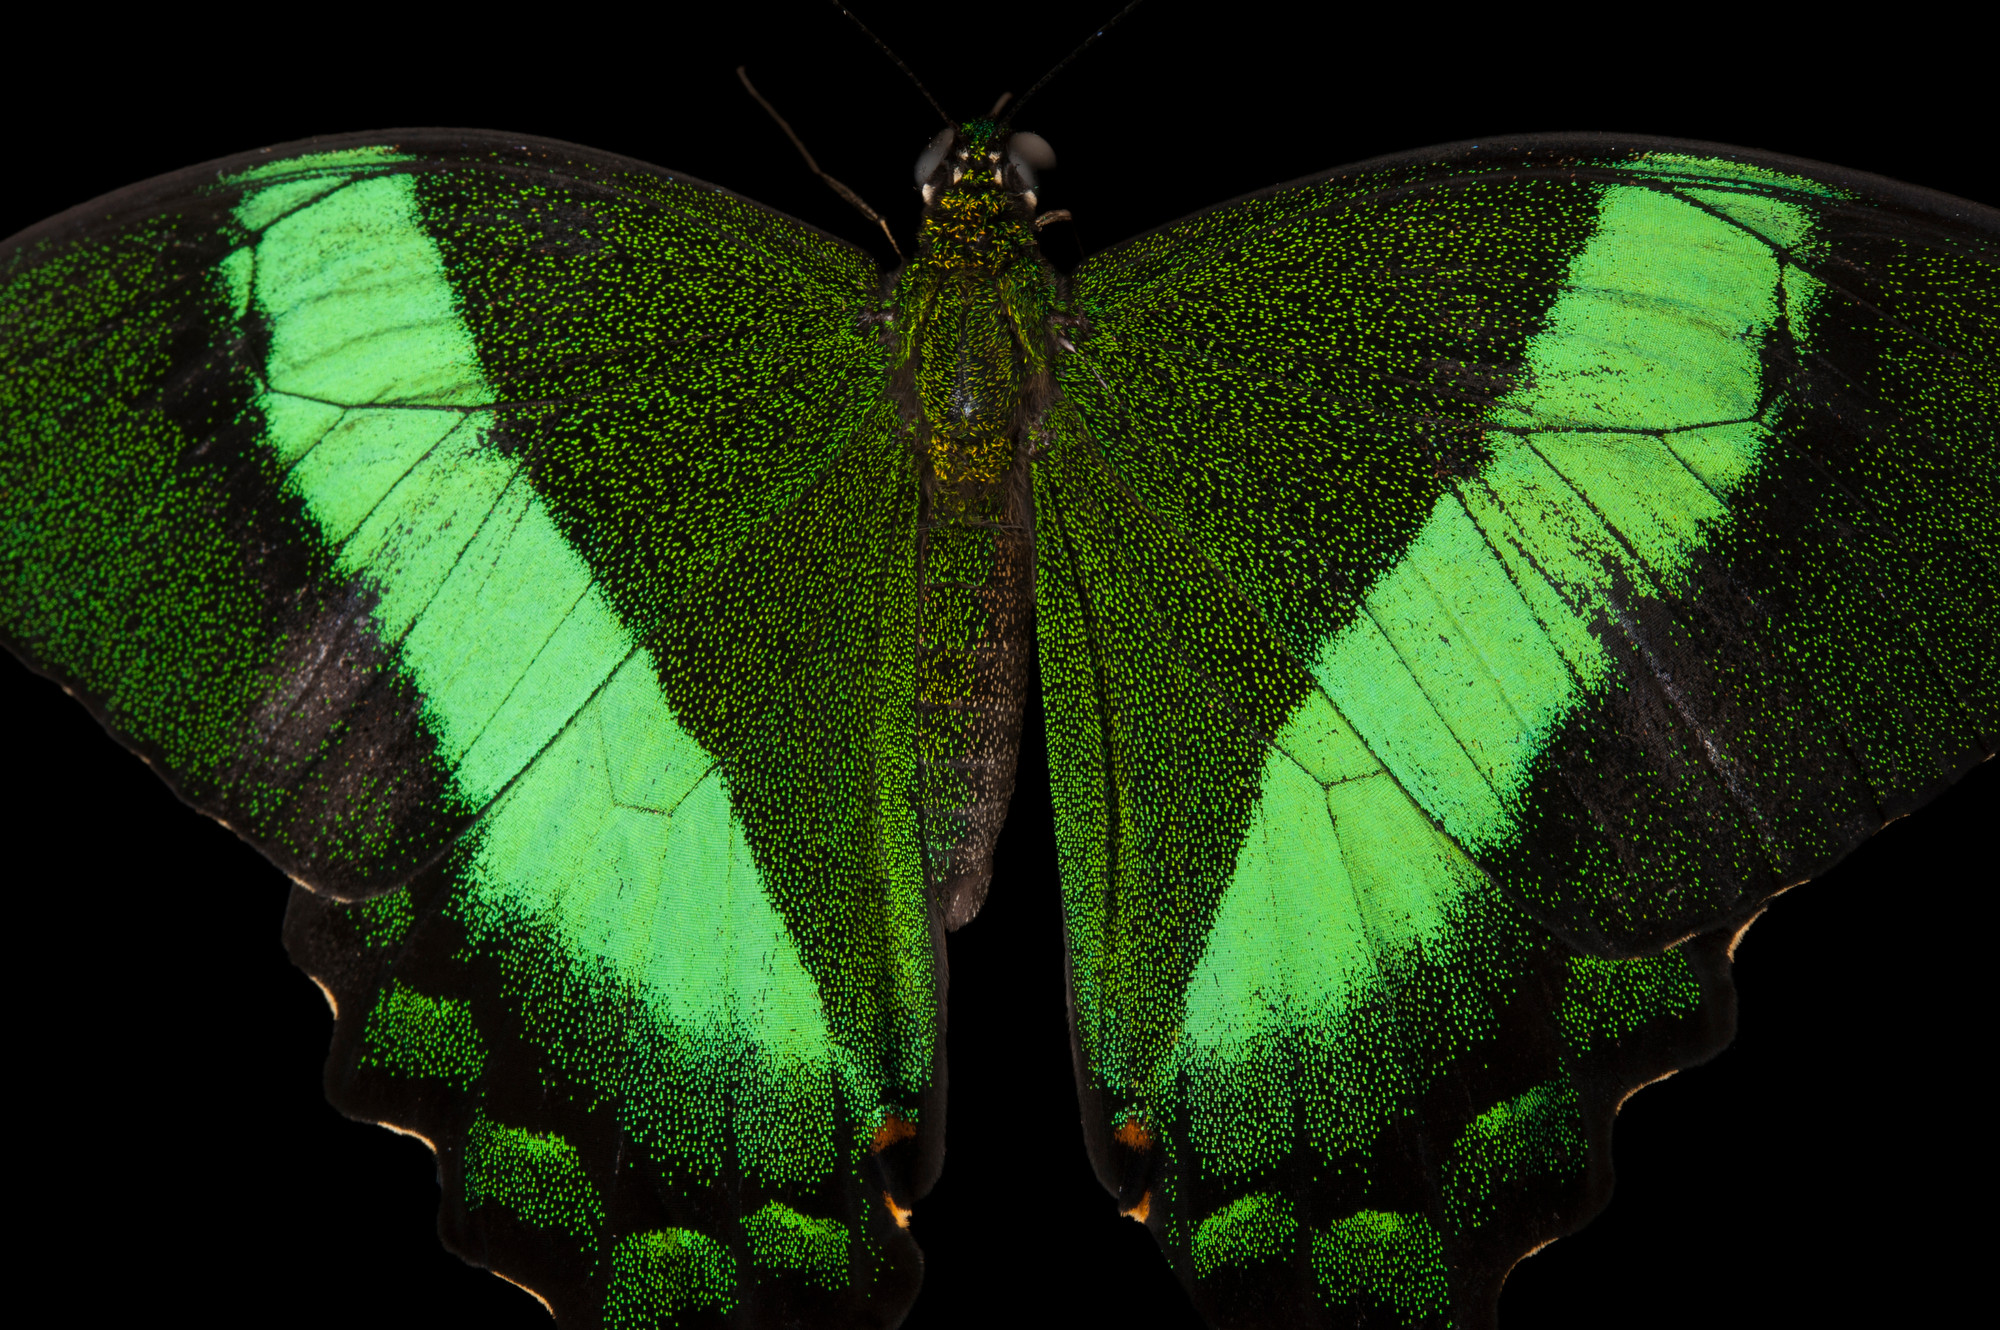 Photo: An emerald swallowtail (Papilio palinurus) at the Audubon Insectarium in New Orleans.